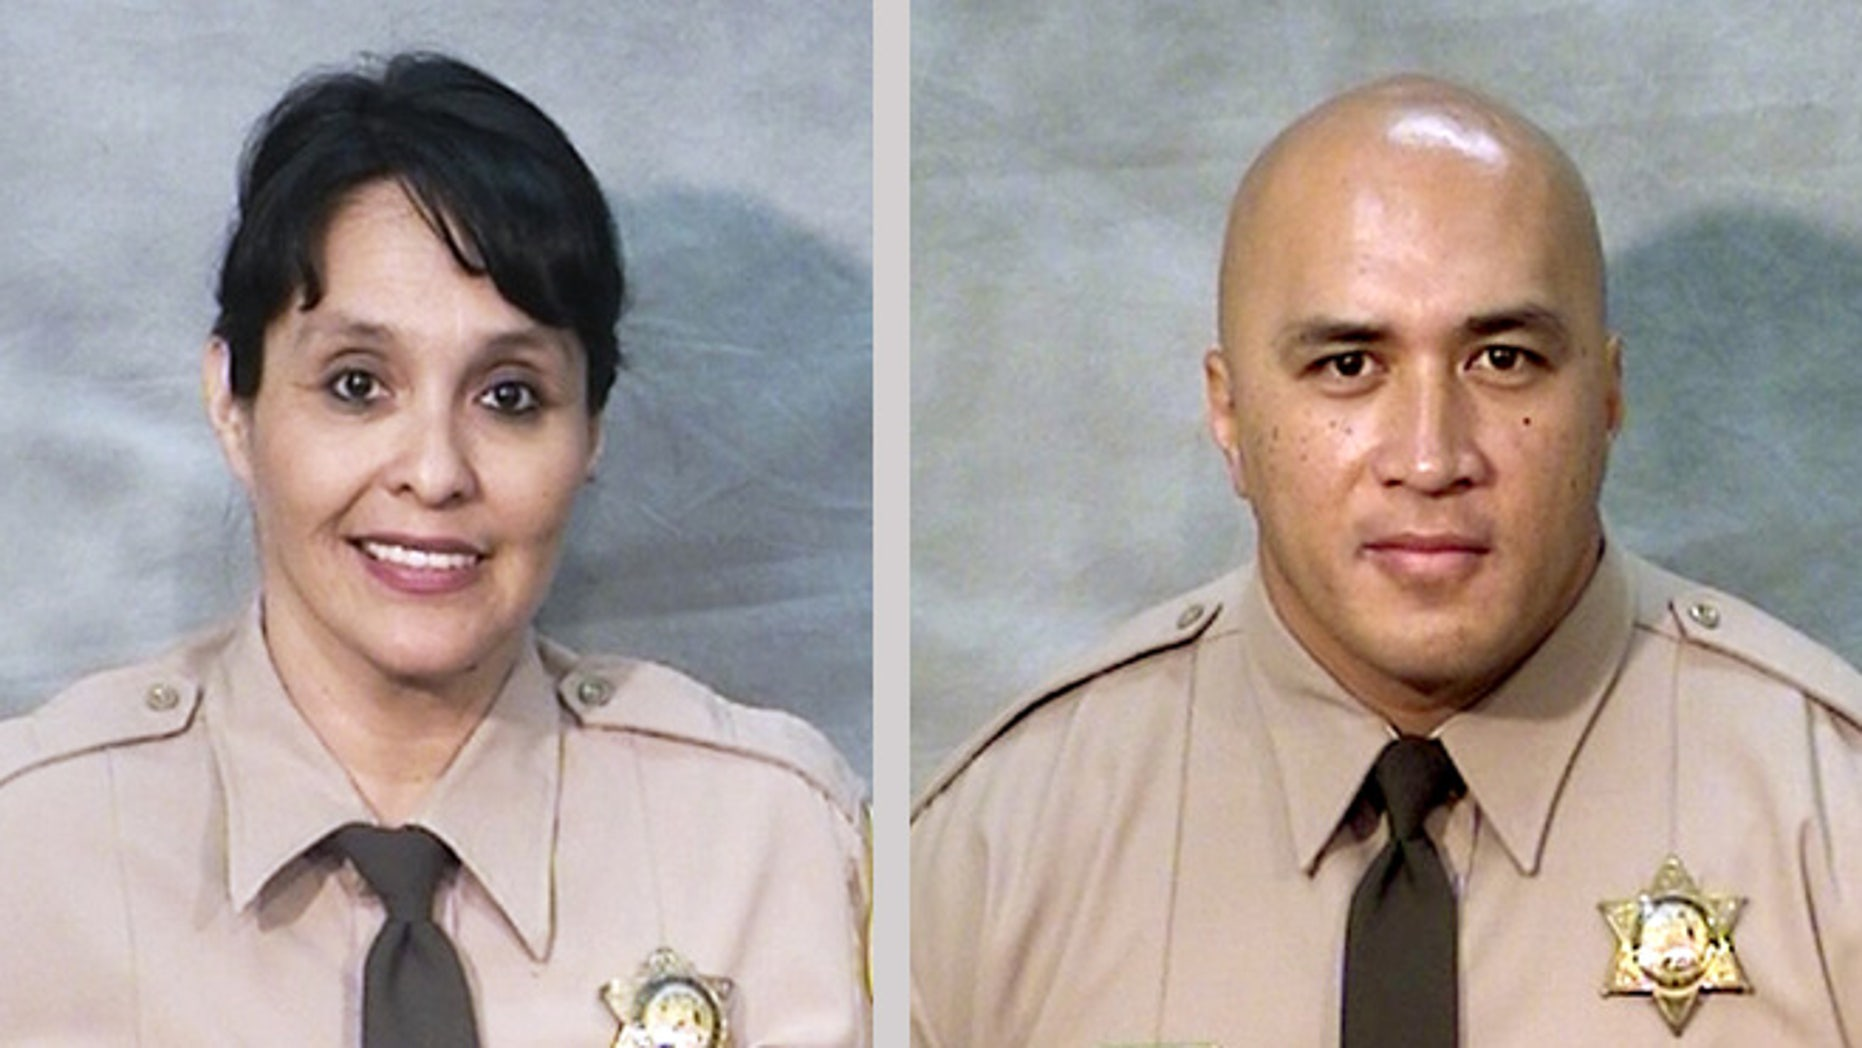 There are undated photos provided by the Fresno County Sheriff's Office shows corrections officers Juanita Davila and Toamalama Scanlan. (Fresno County Sheriff's Office via AP)